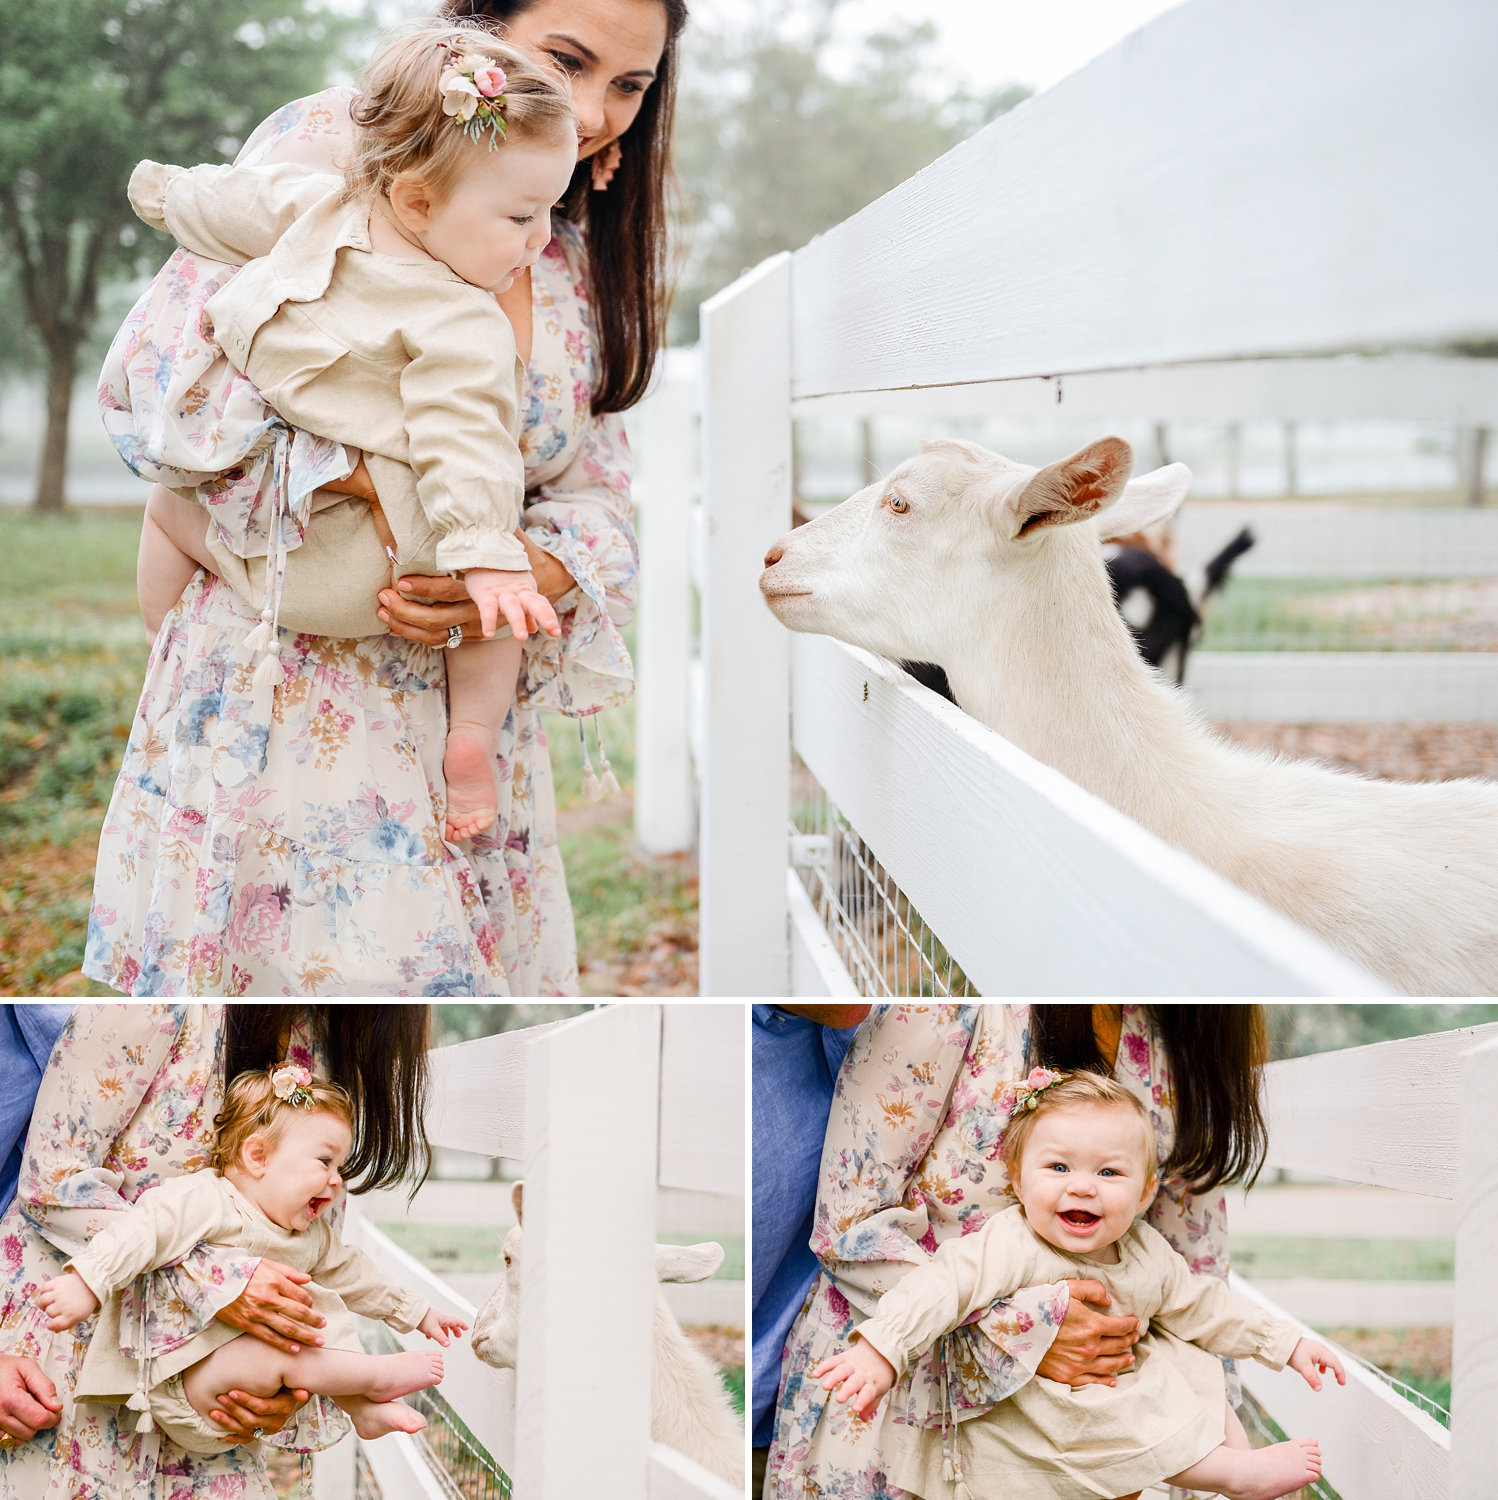 Congaree and Penn, family farm session, goats, goat with a baby, Ryaphotos